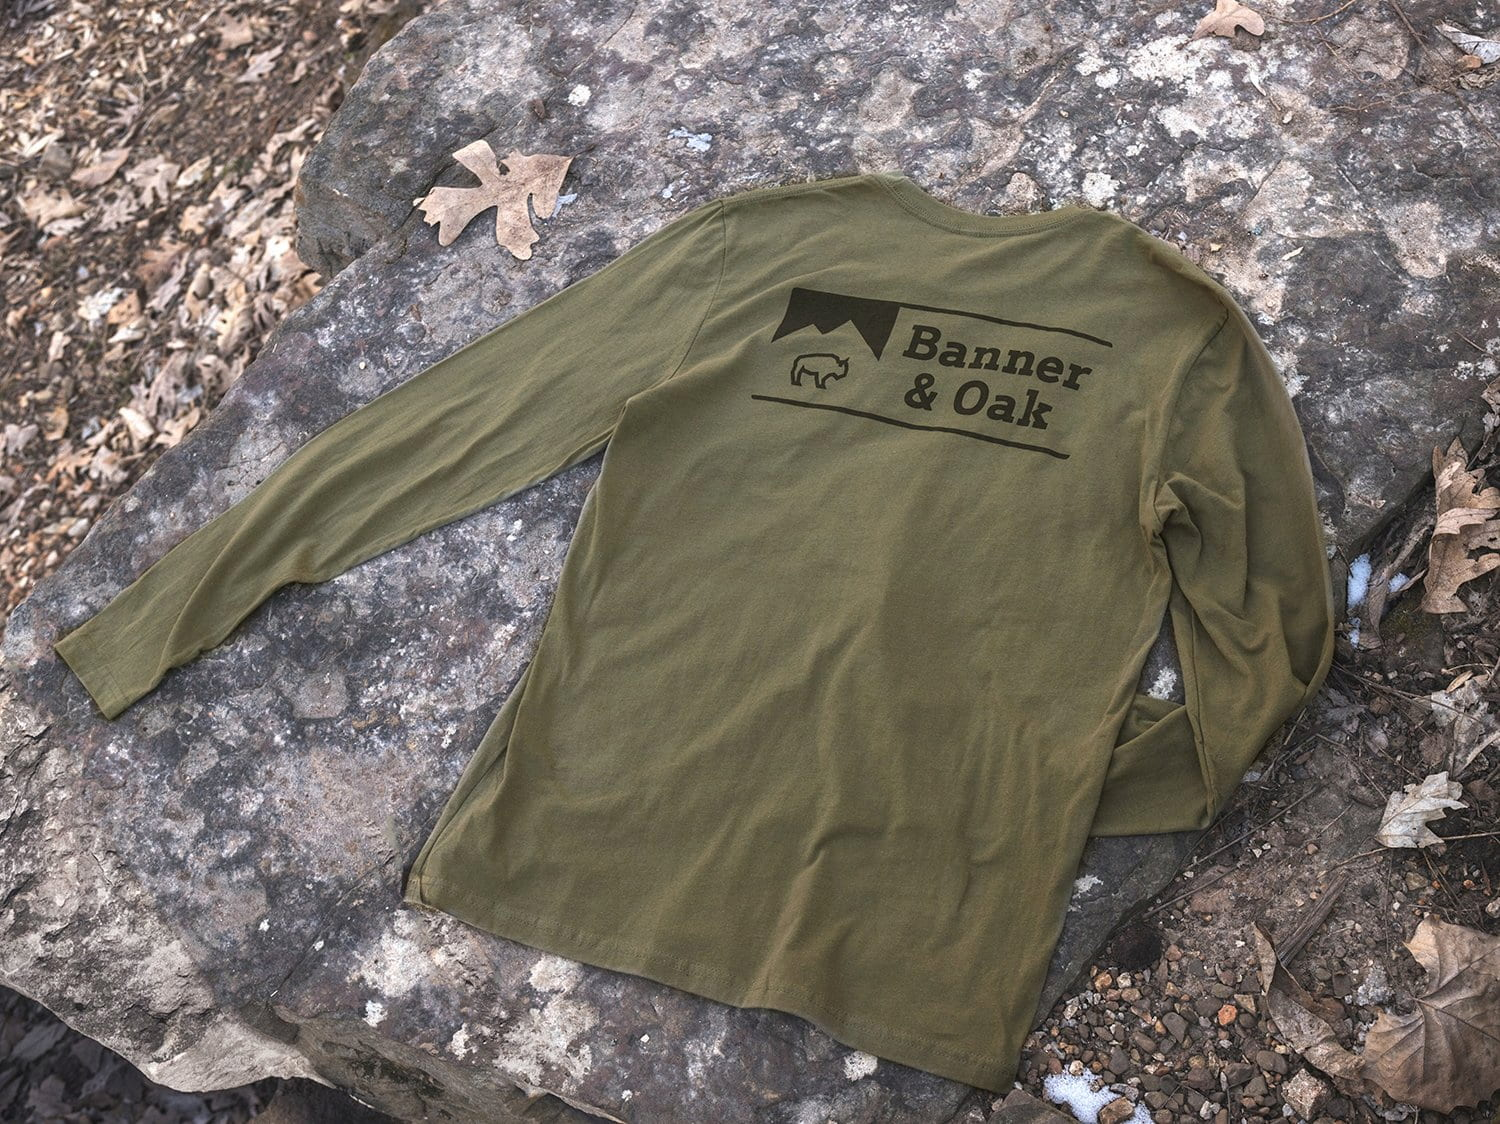 Banner and Oak long sleeve shirt for fall camping